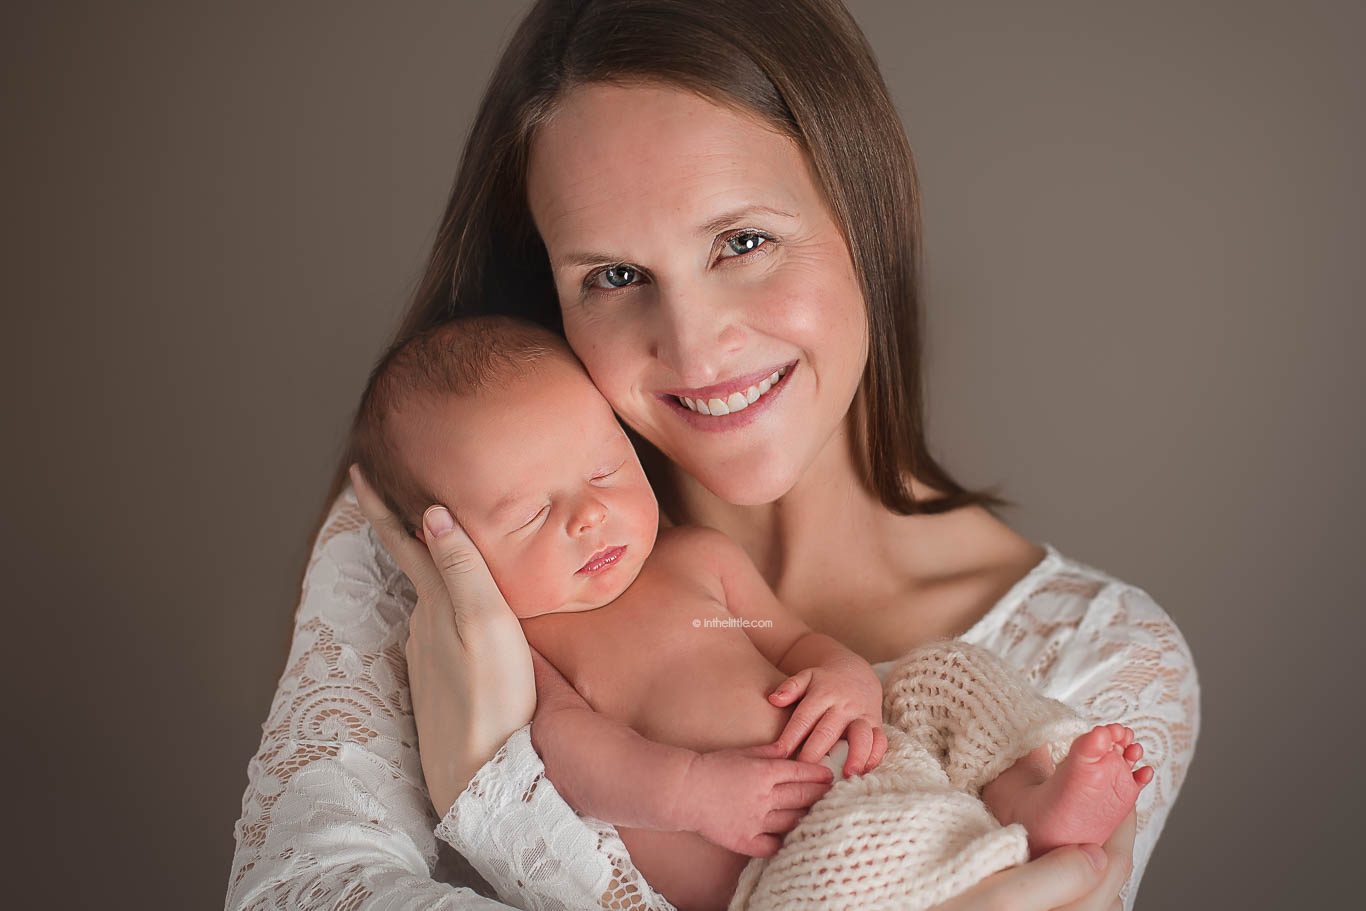 St. Louis Baby Photo Sessions   At Home or Portrait Studio